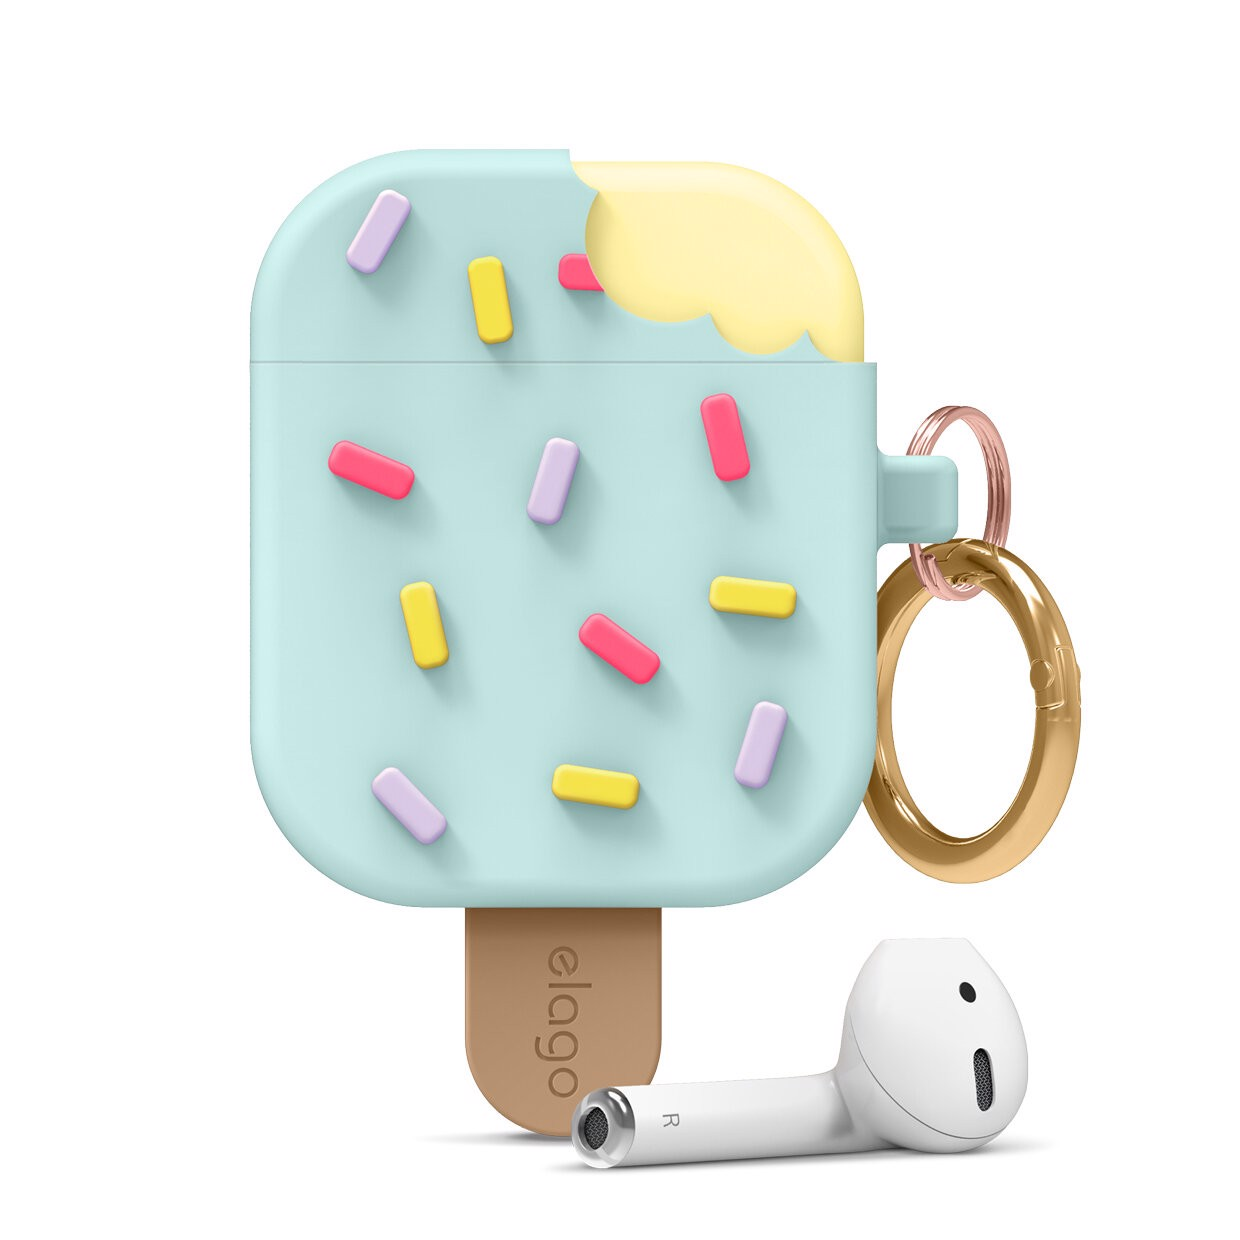 Ốp Elago Ice Cream AirPods